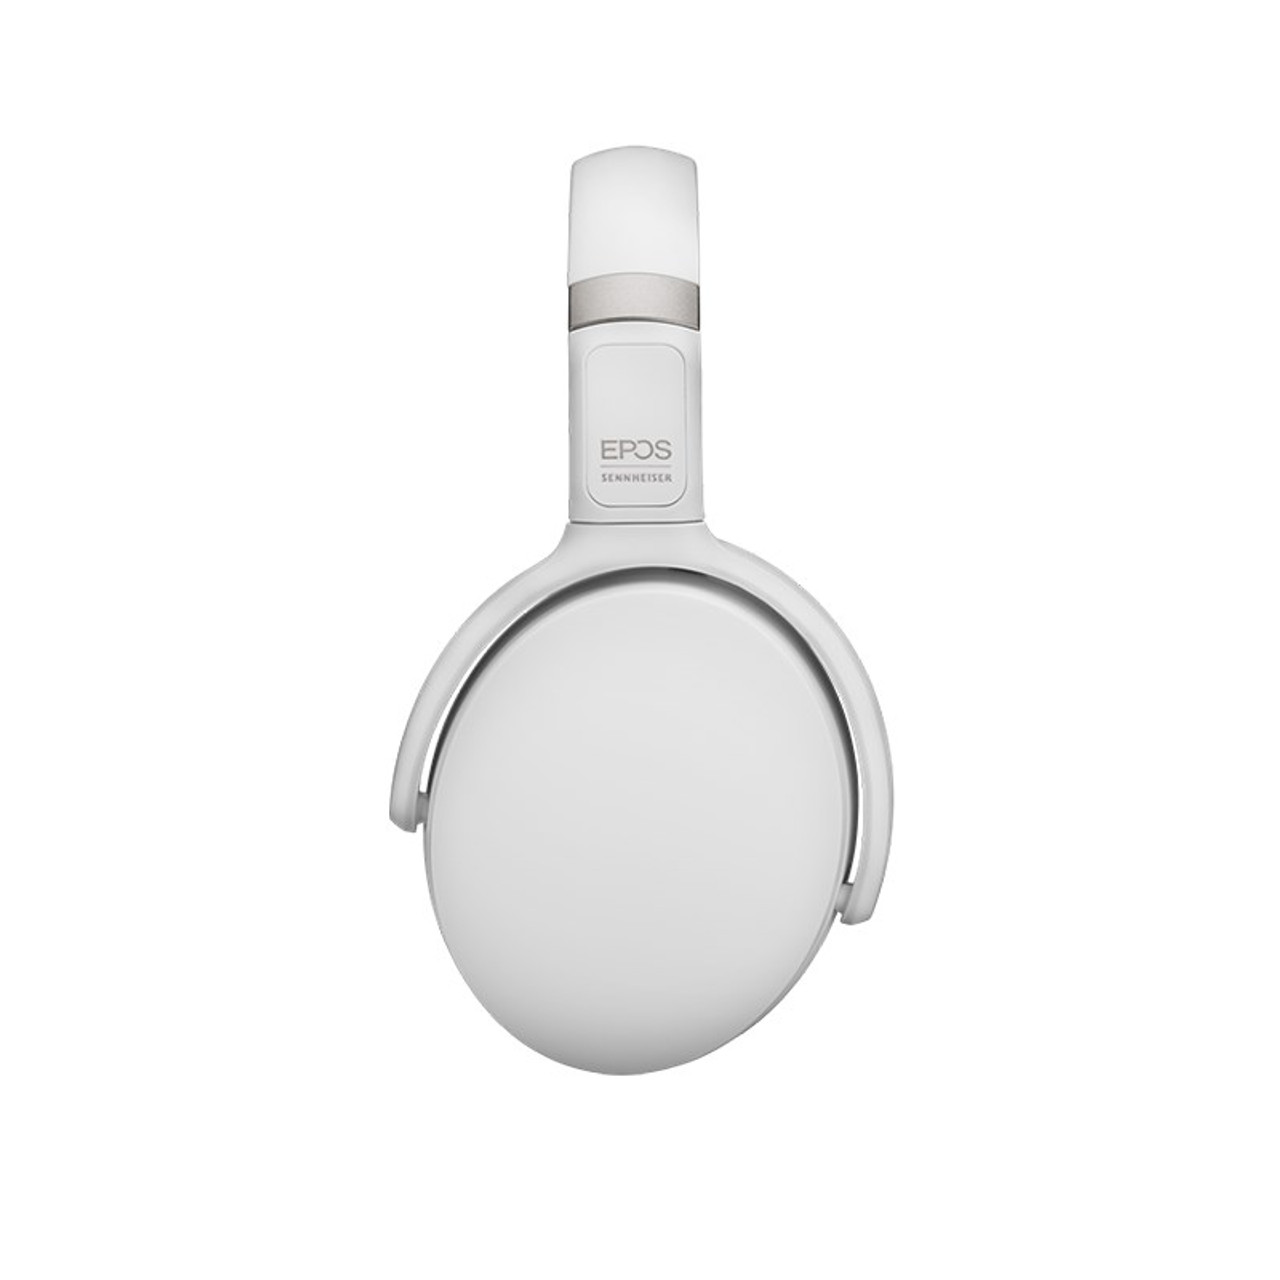 Image for EPOS Sennheiser ADAPT 360 White ANC Bluetooth Headset With Mic CX Computer Superstore